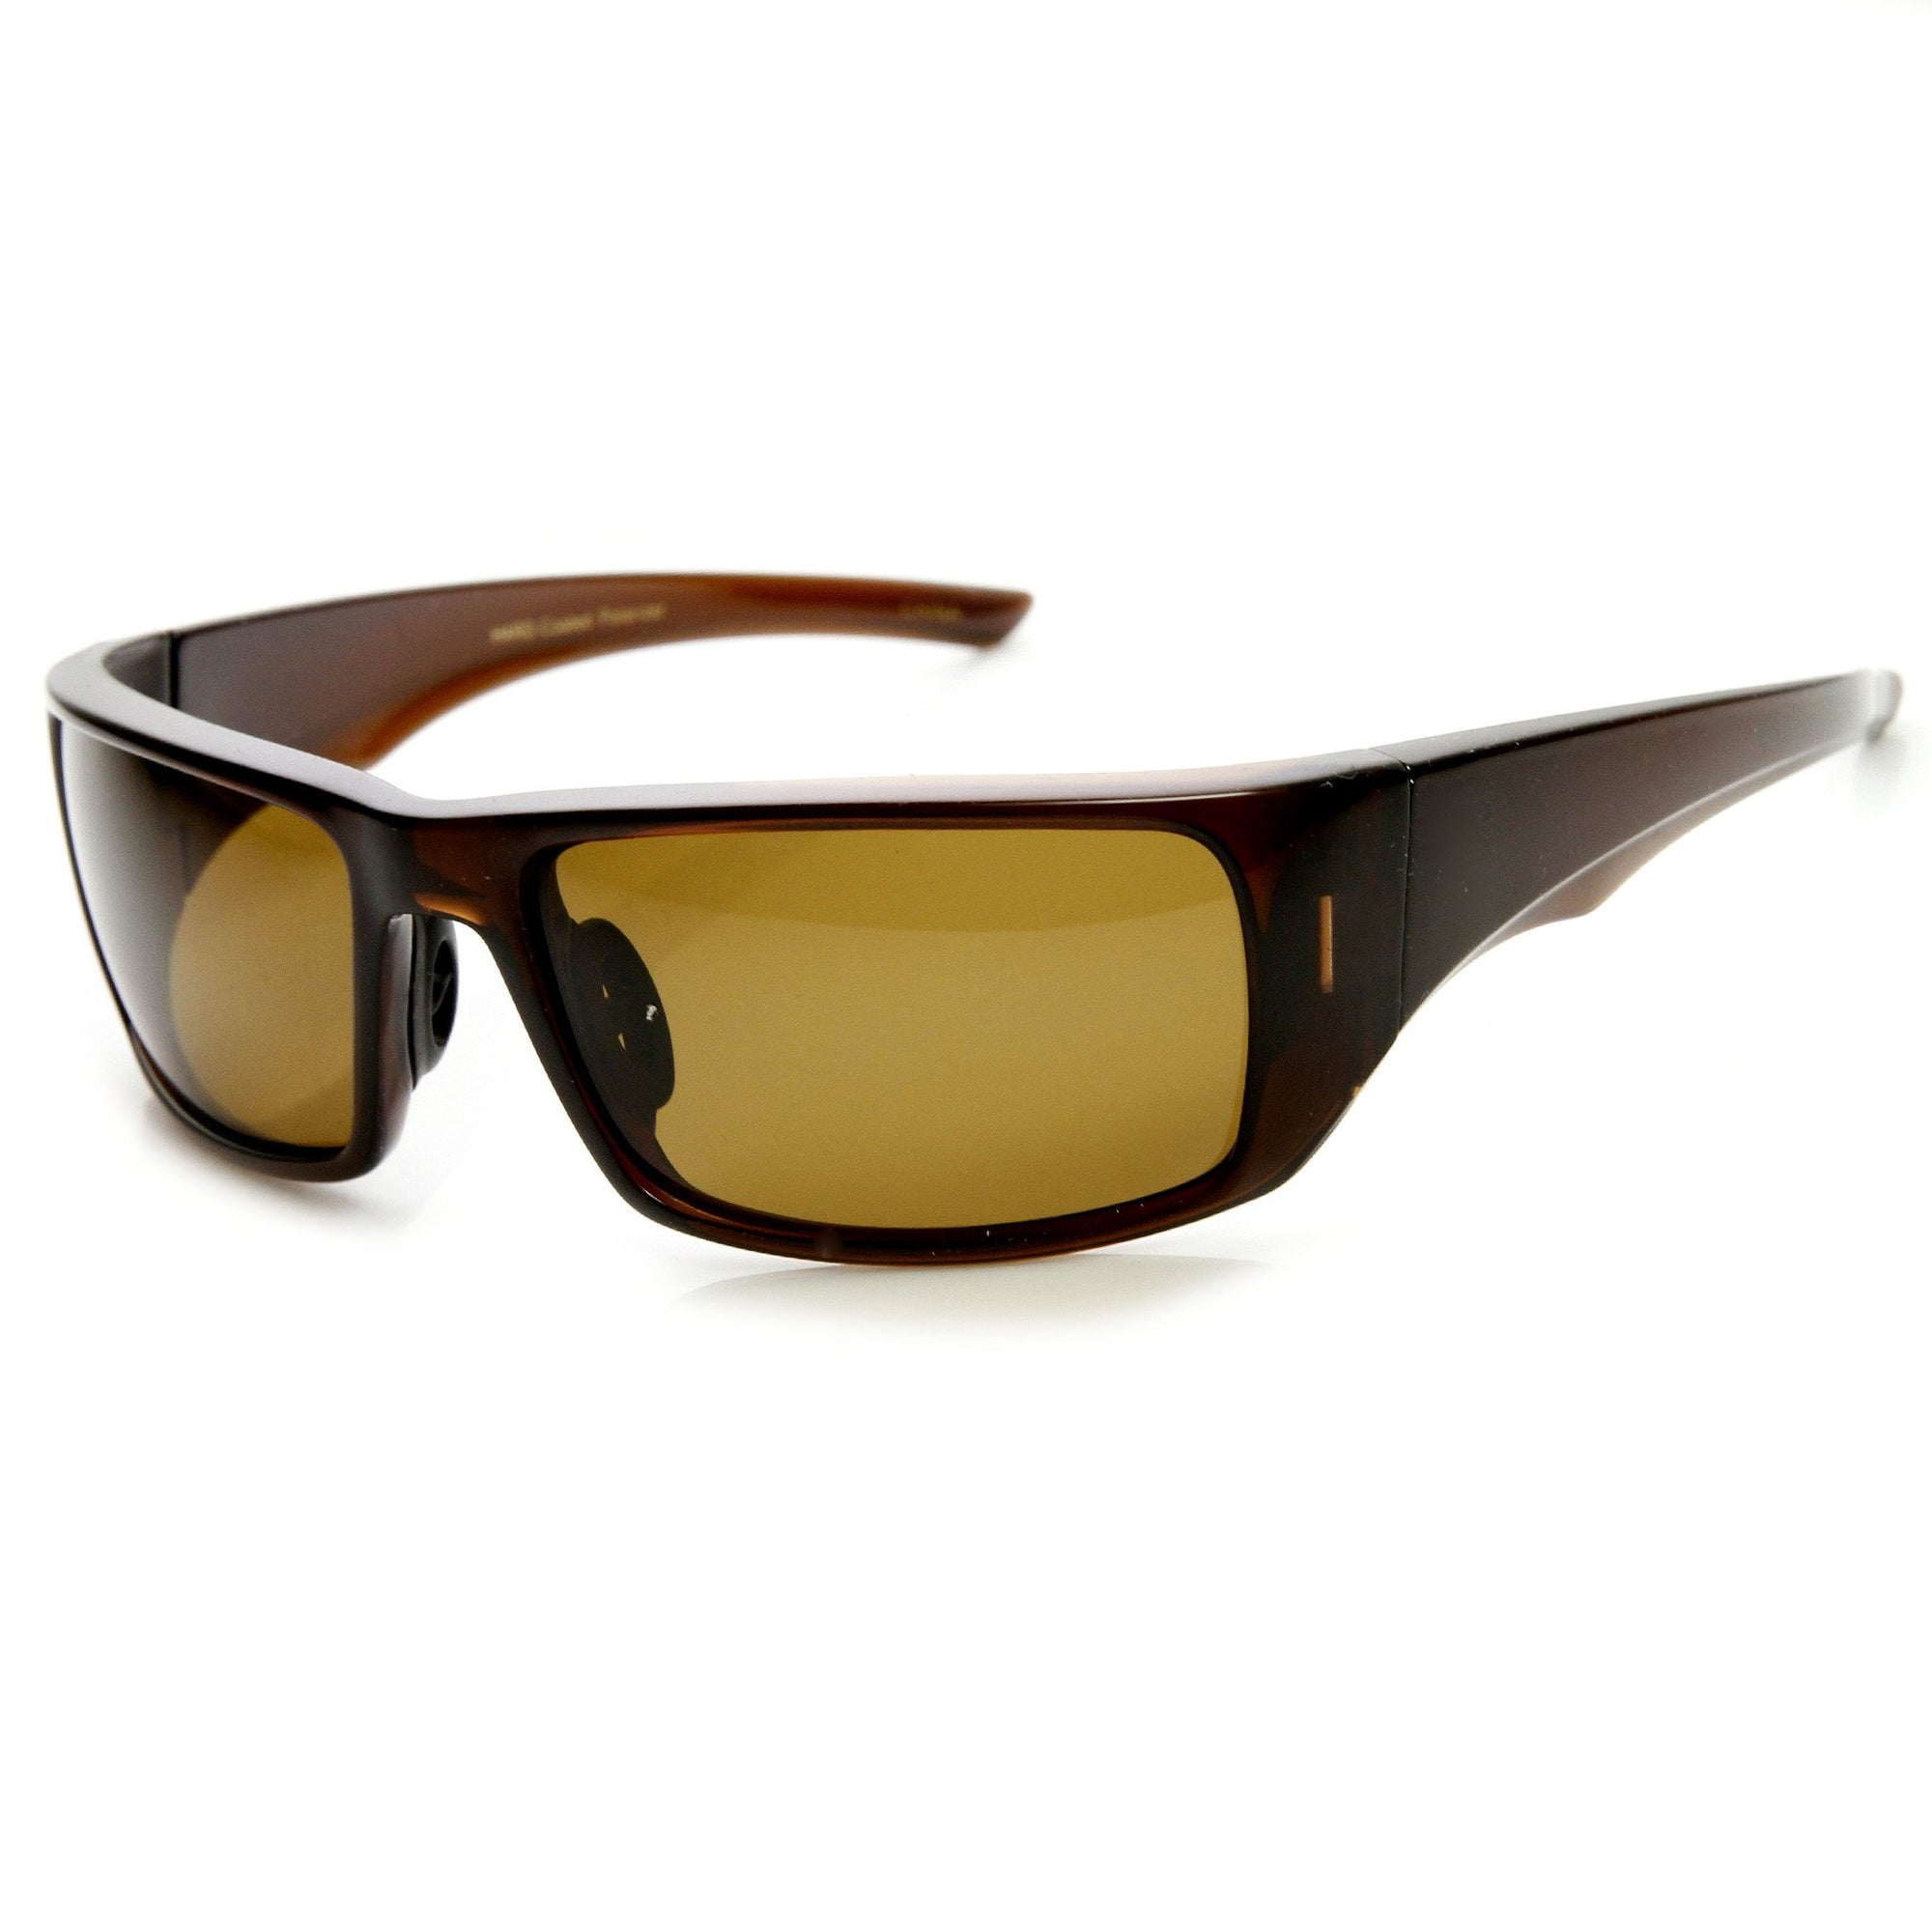 17a5ee56919 Mens Polarized Wrap Around Sports Polarized Sungasses - zeroUV